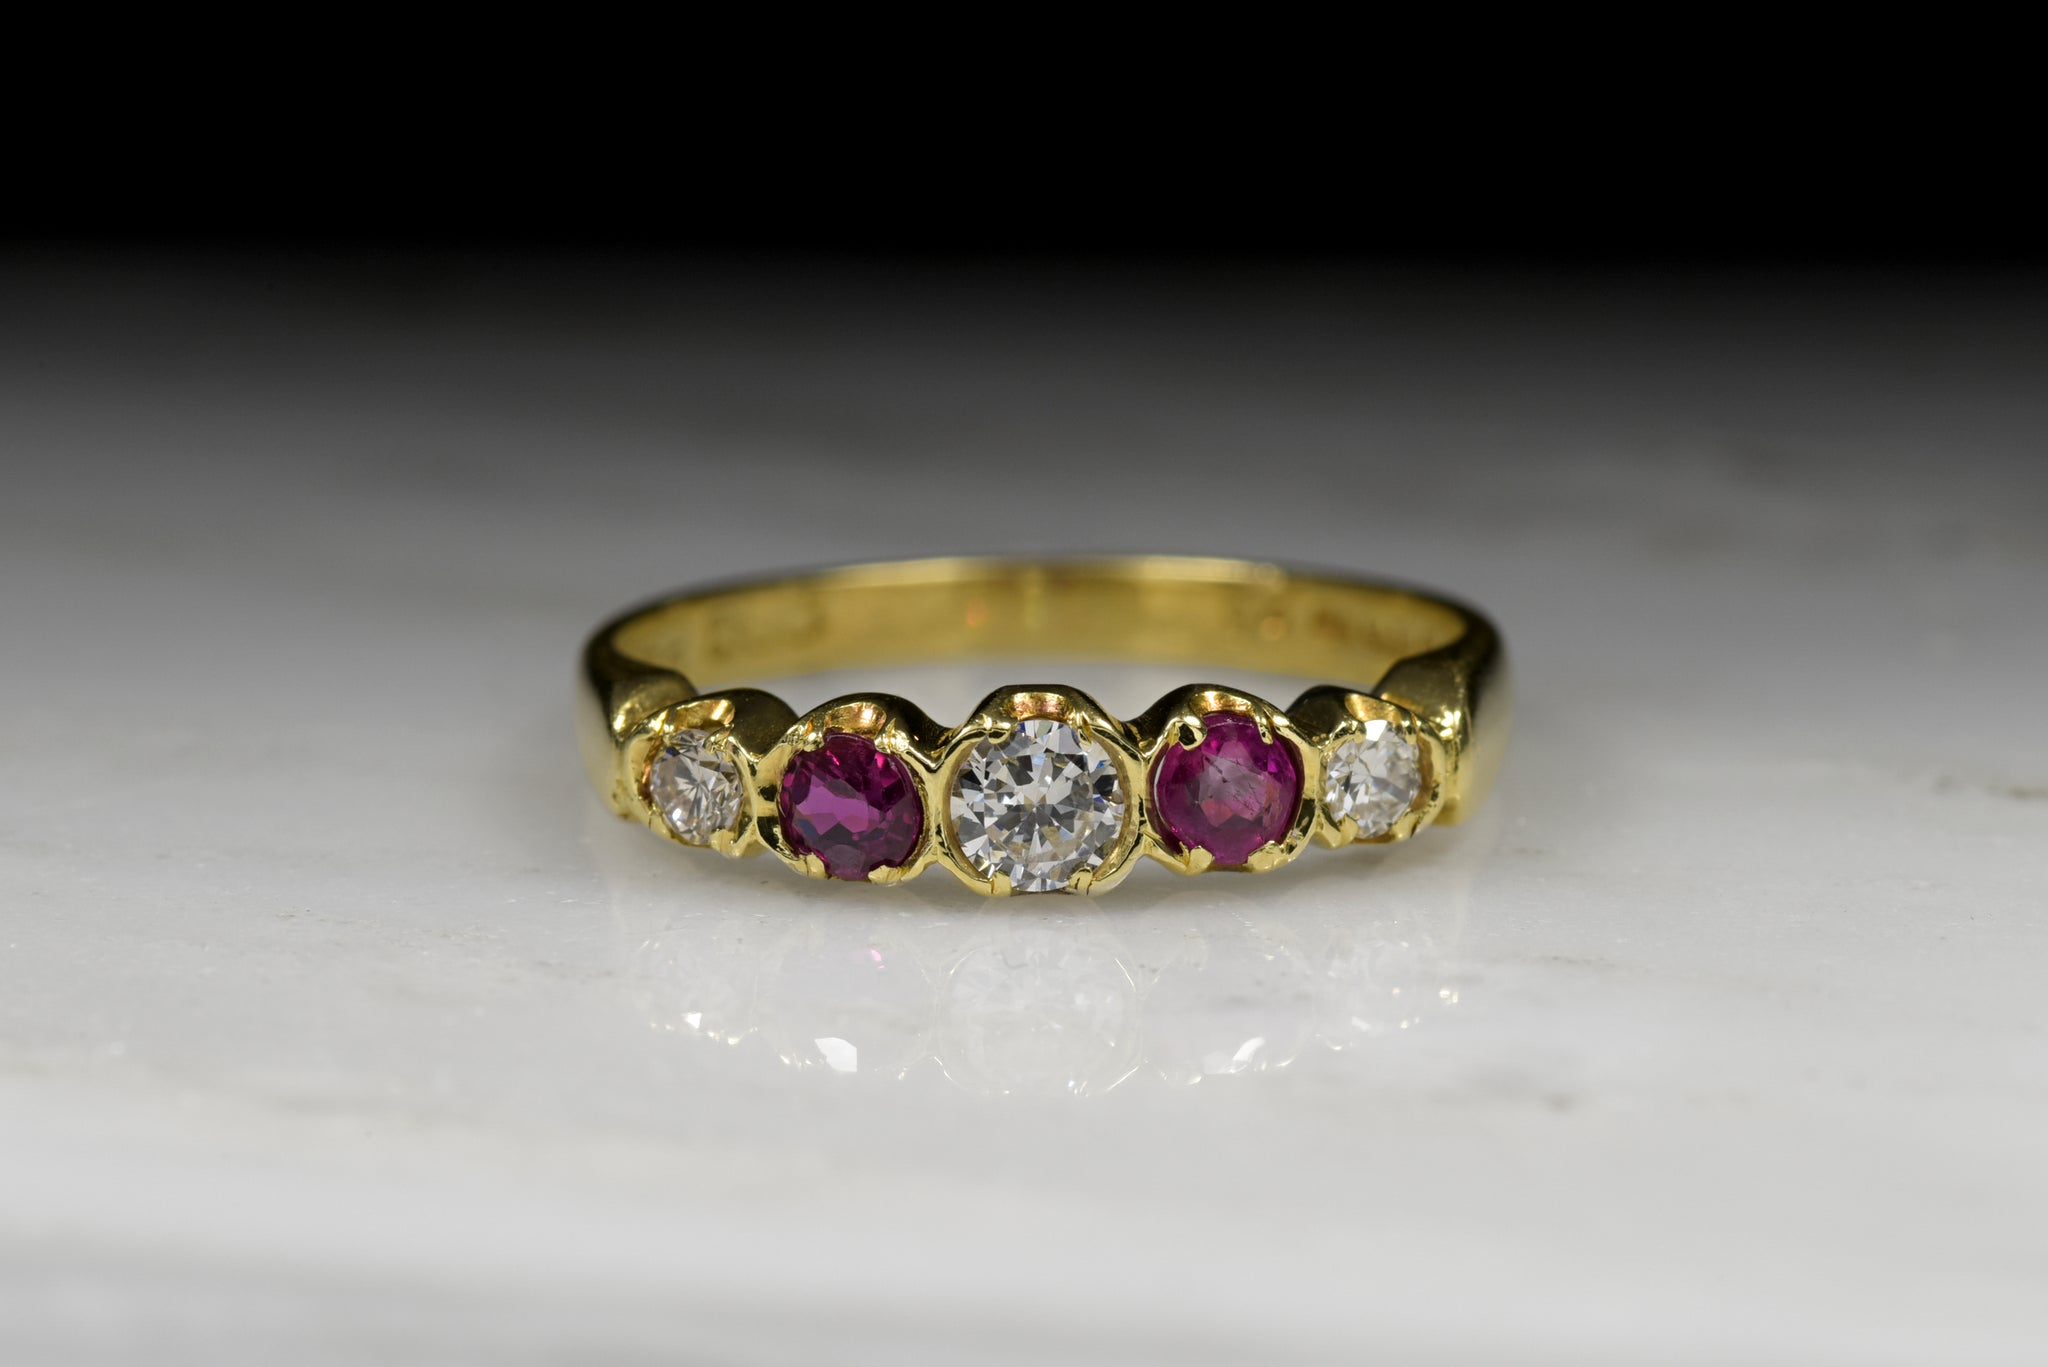 f92049aec Vintage Retro / Mod Round Brilliant Cut Diamond And Ruby Band in 18K Yellow  Gold